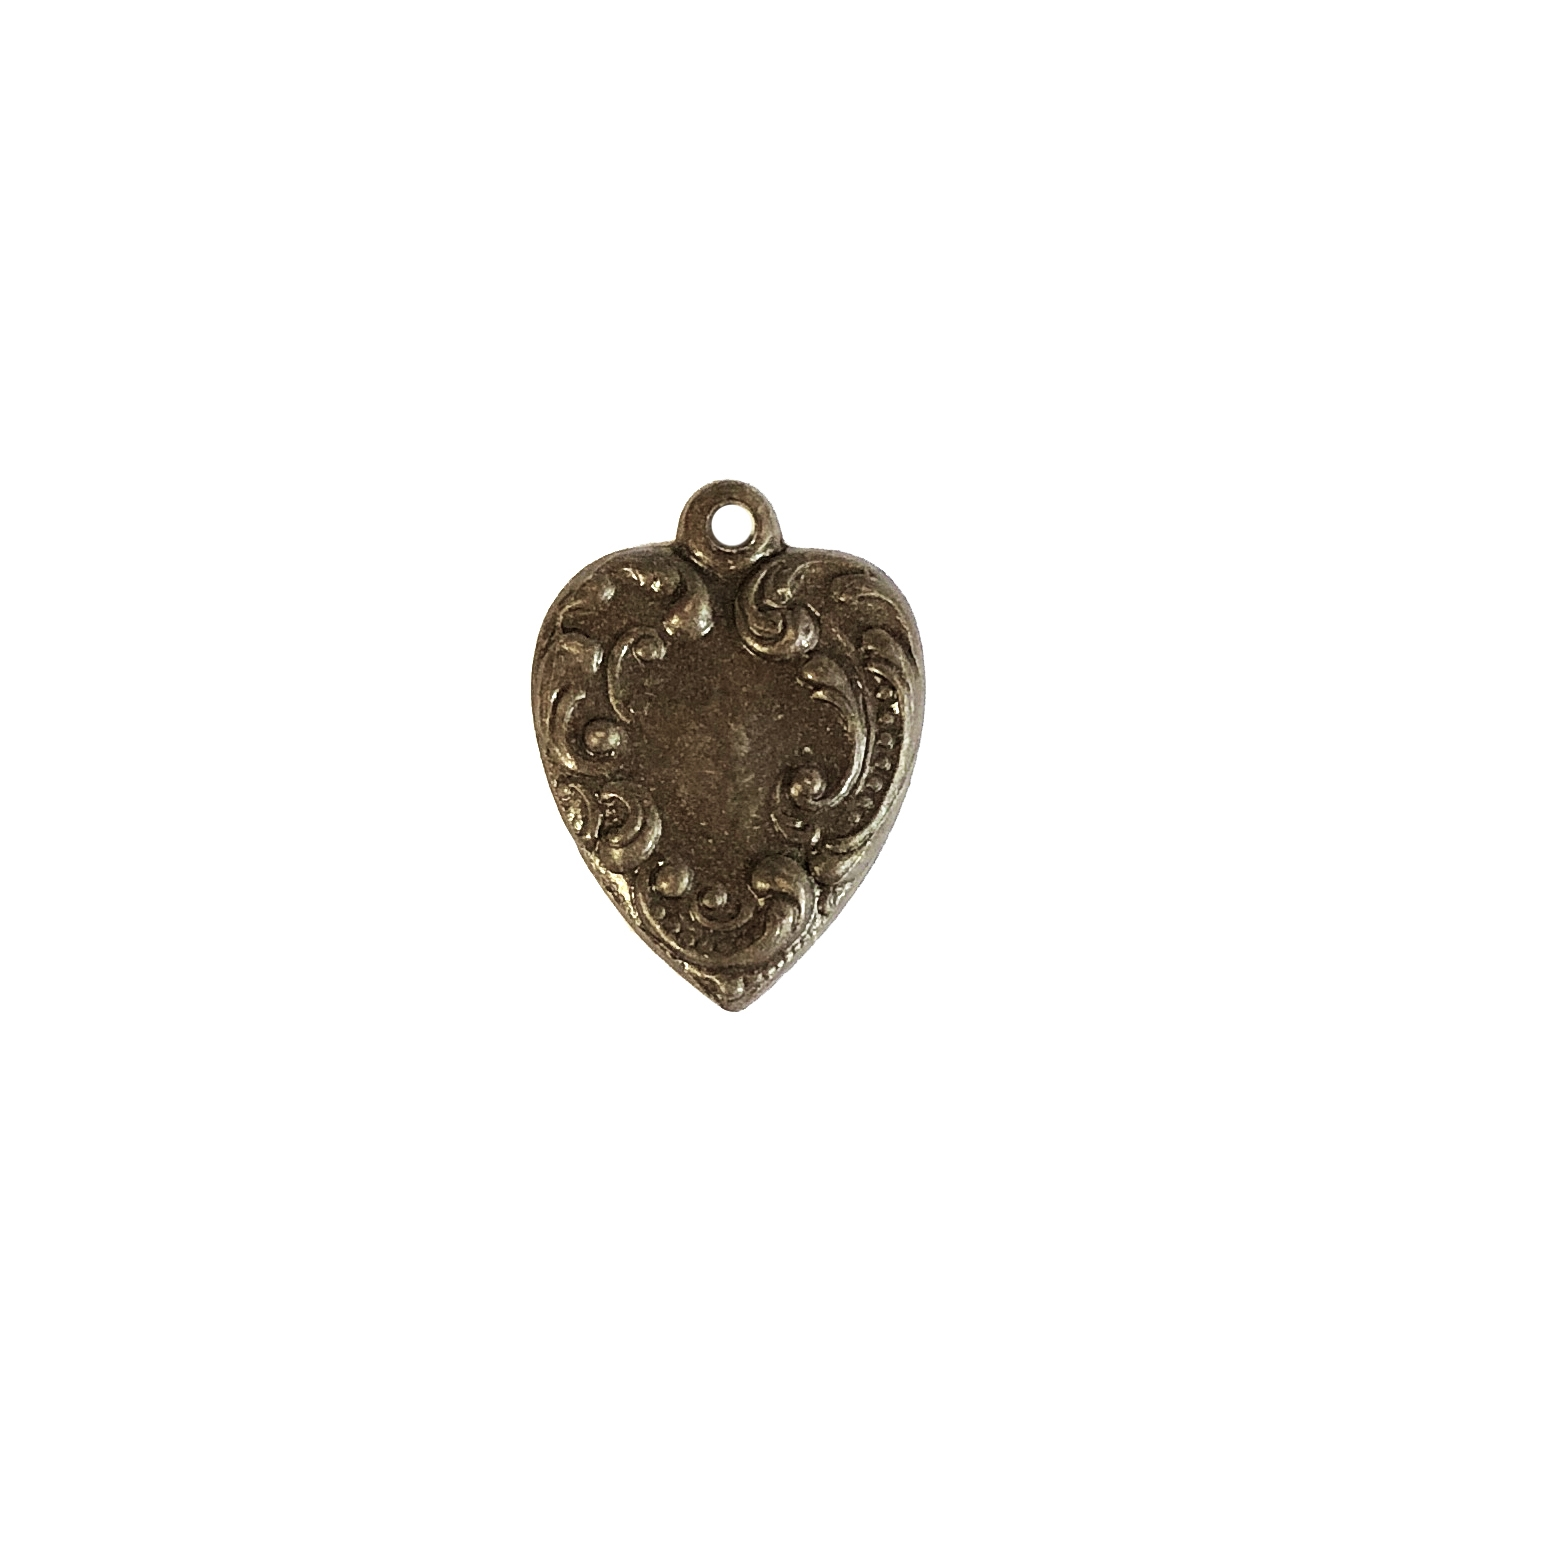 small heart charm, chocolate brass, hearts, brass stamping, charm, pendant, floral design, 28x24mm, heart charm, us made, brass, floral, nickel free, B'sue Boutiques, vintage supplies, leafy heart, 09965